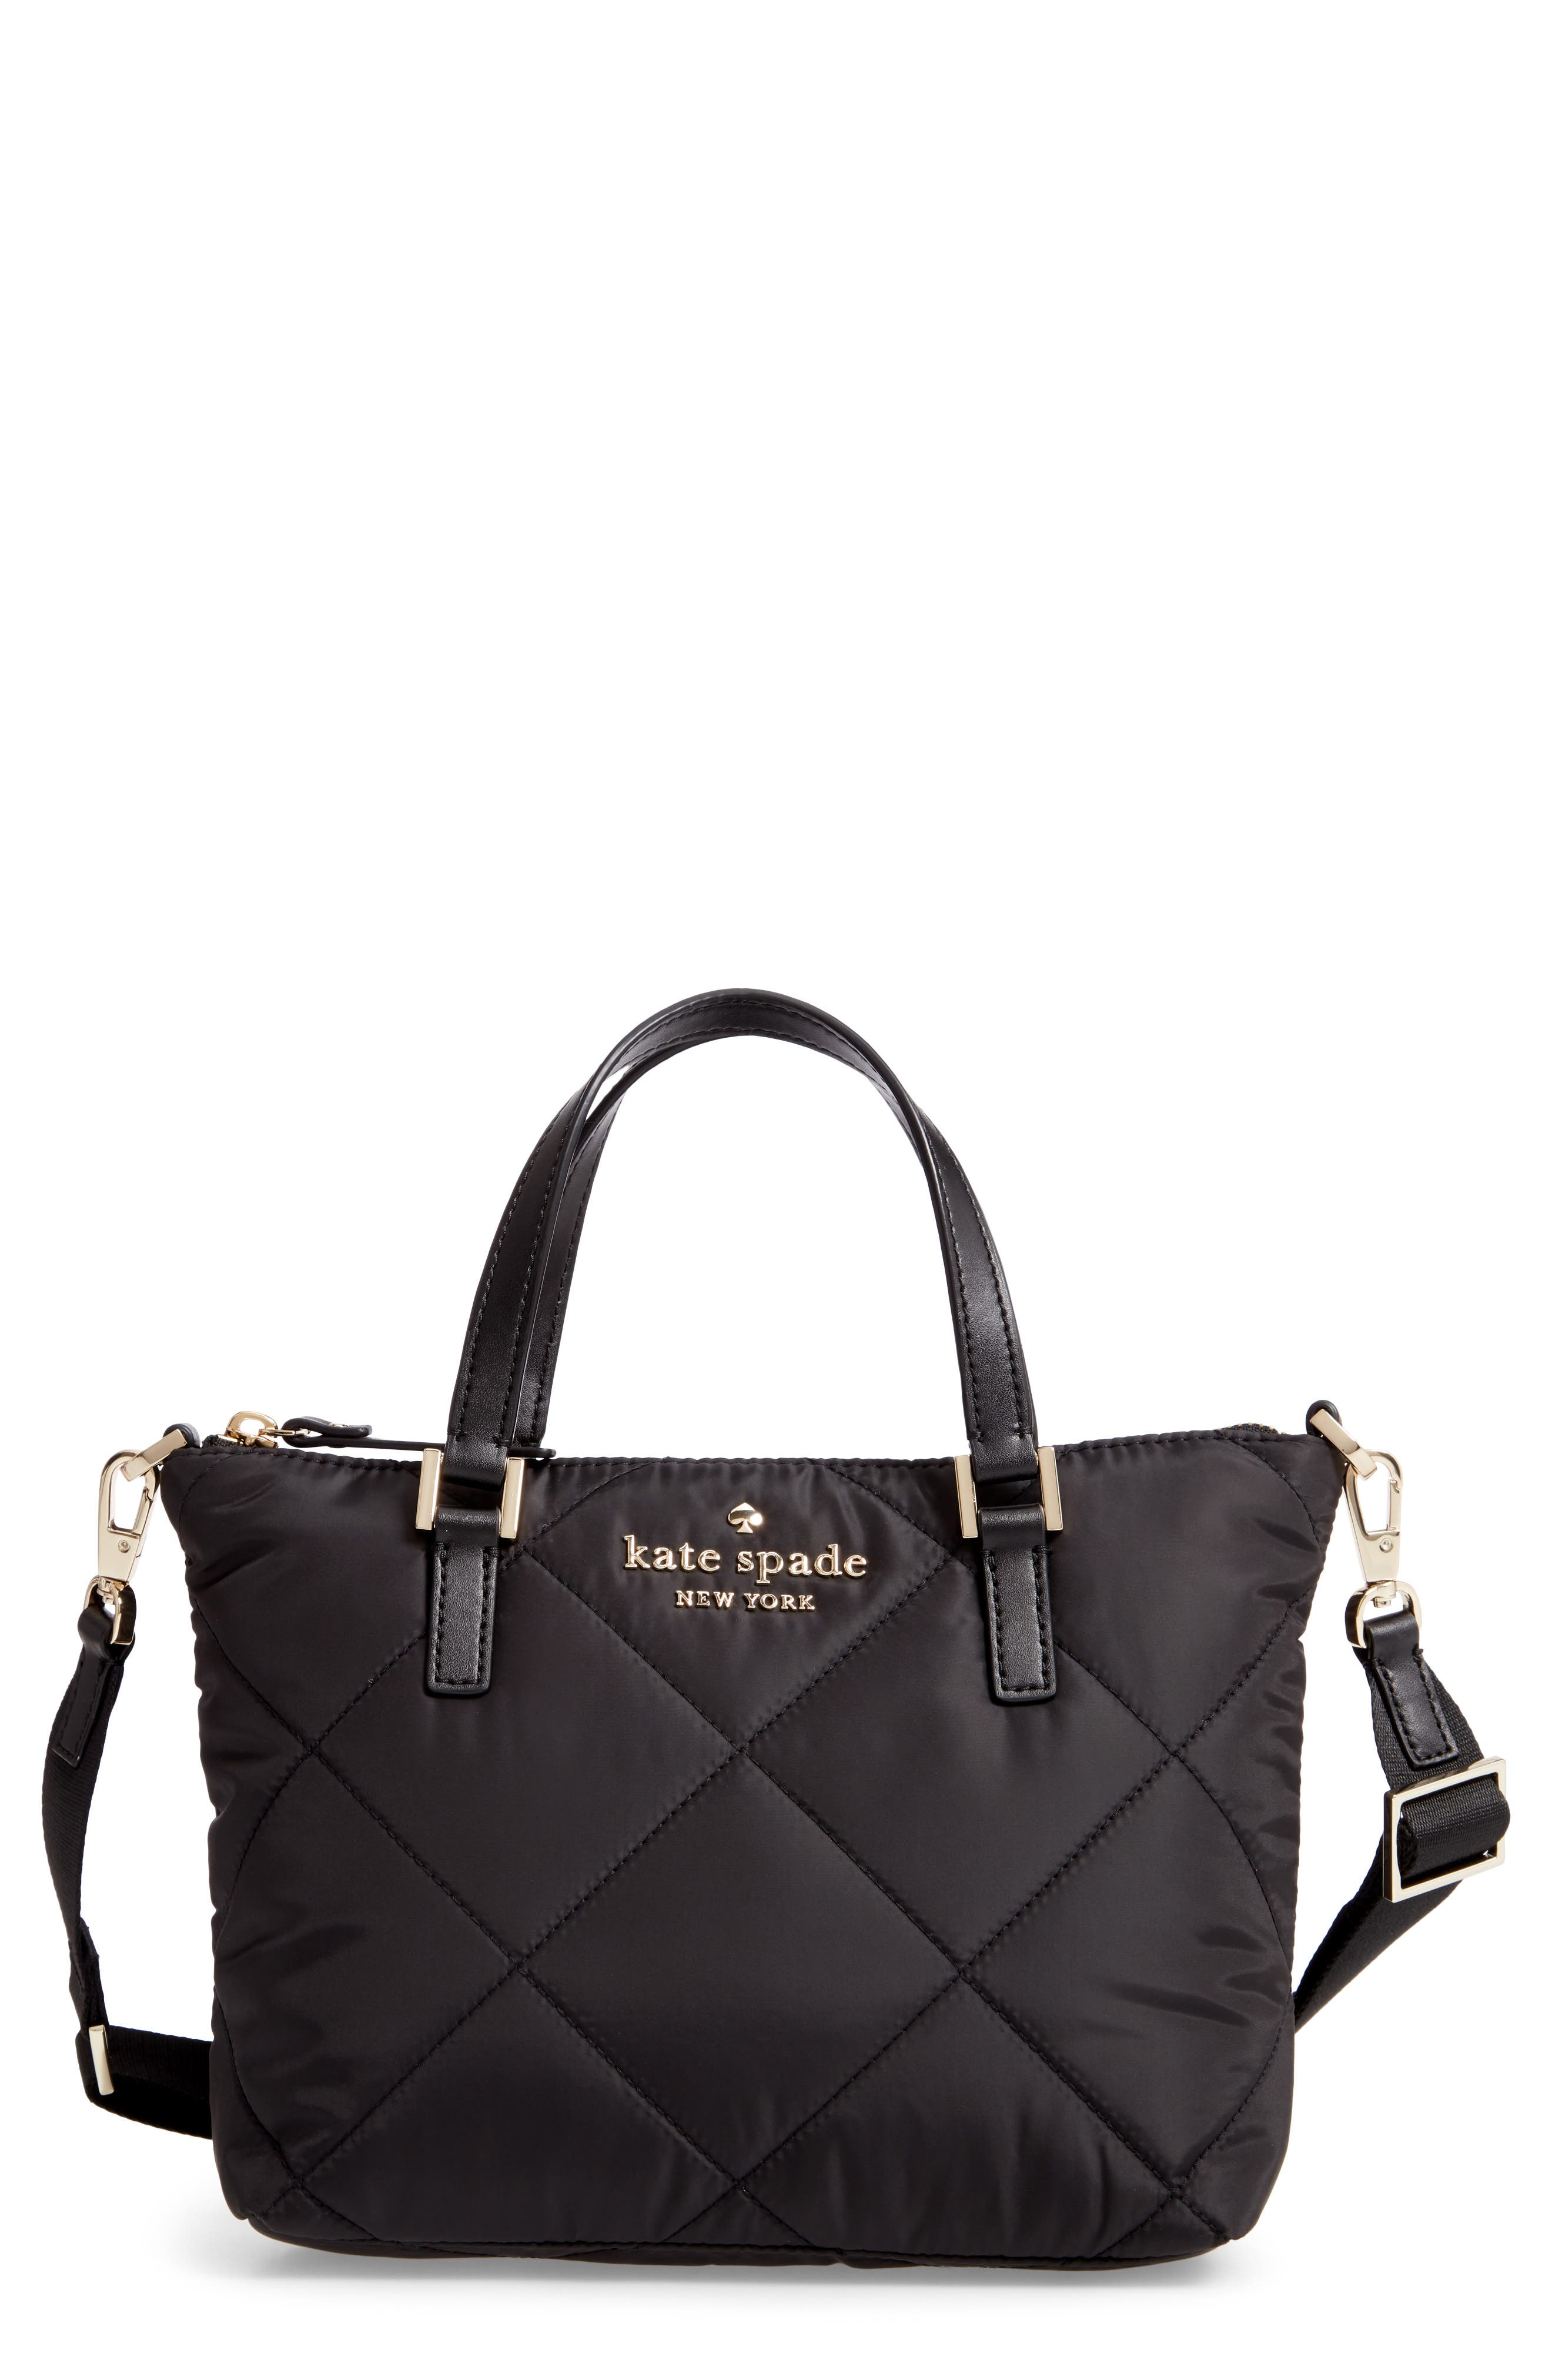 watson lane - quilted lucie crossbody bag, Main, color, 001